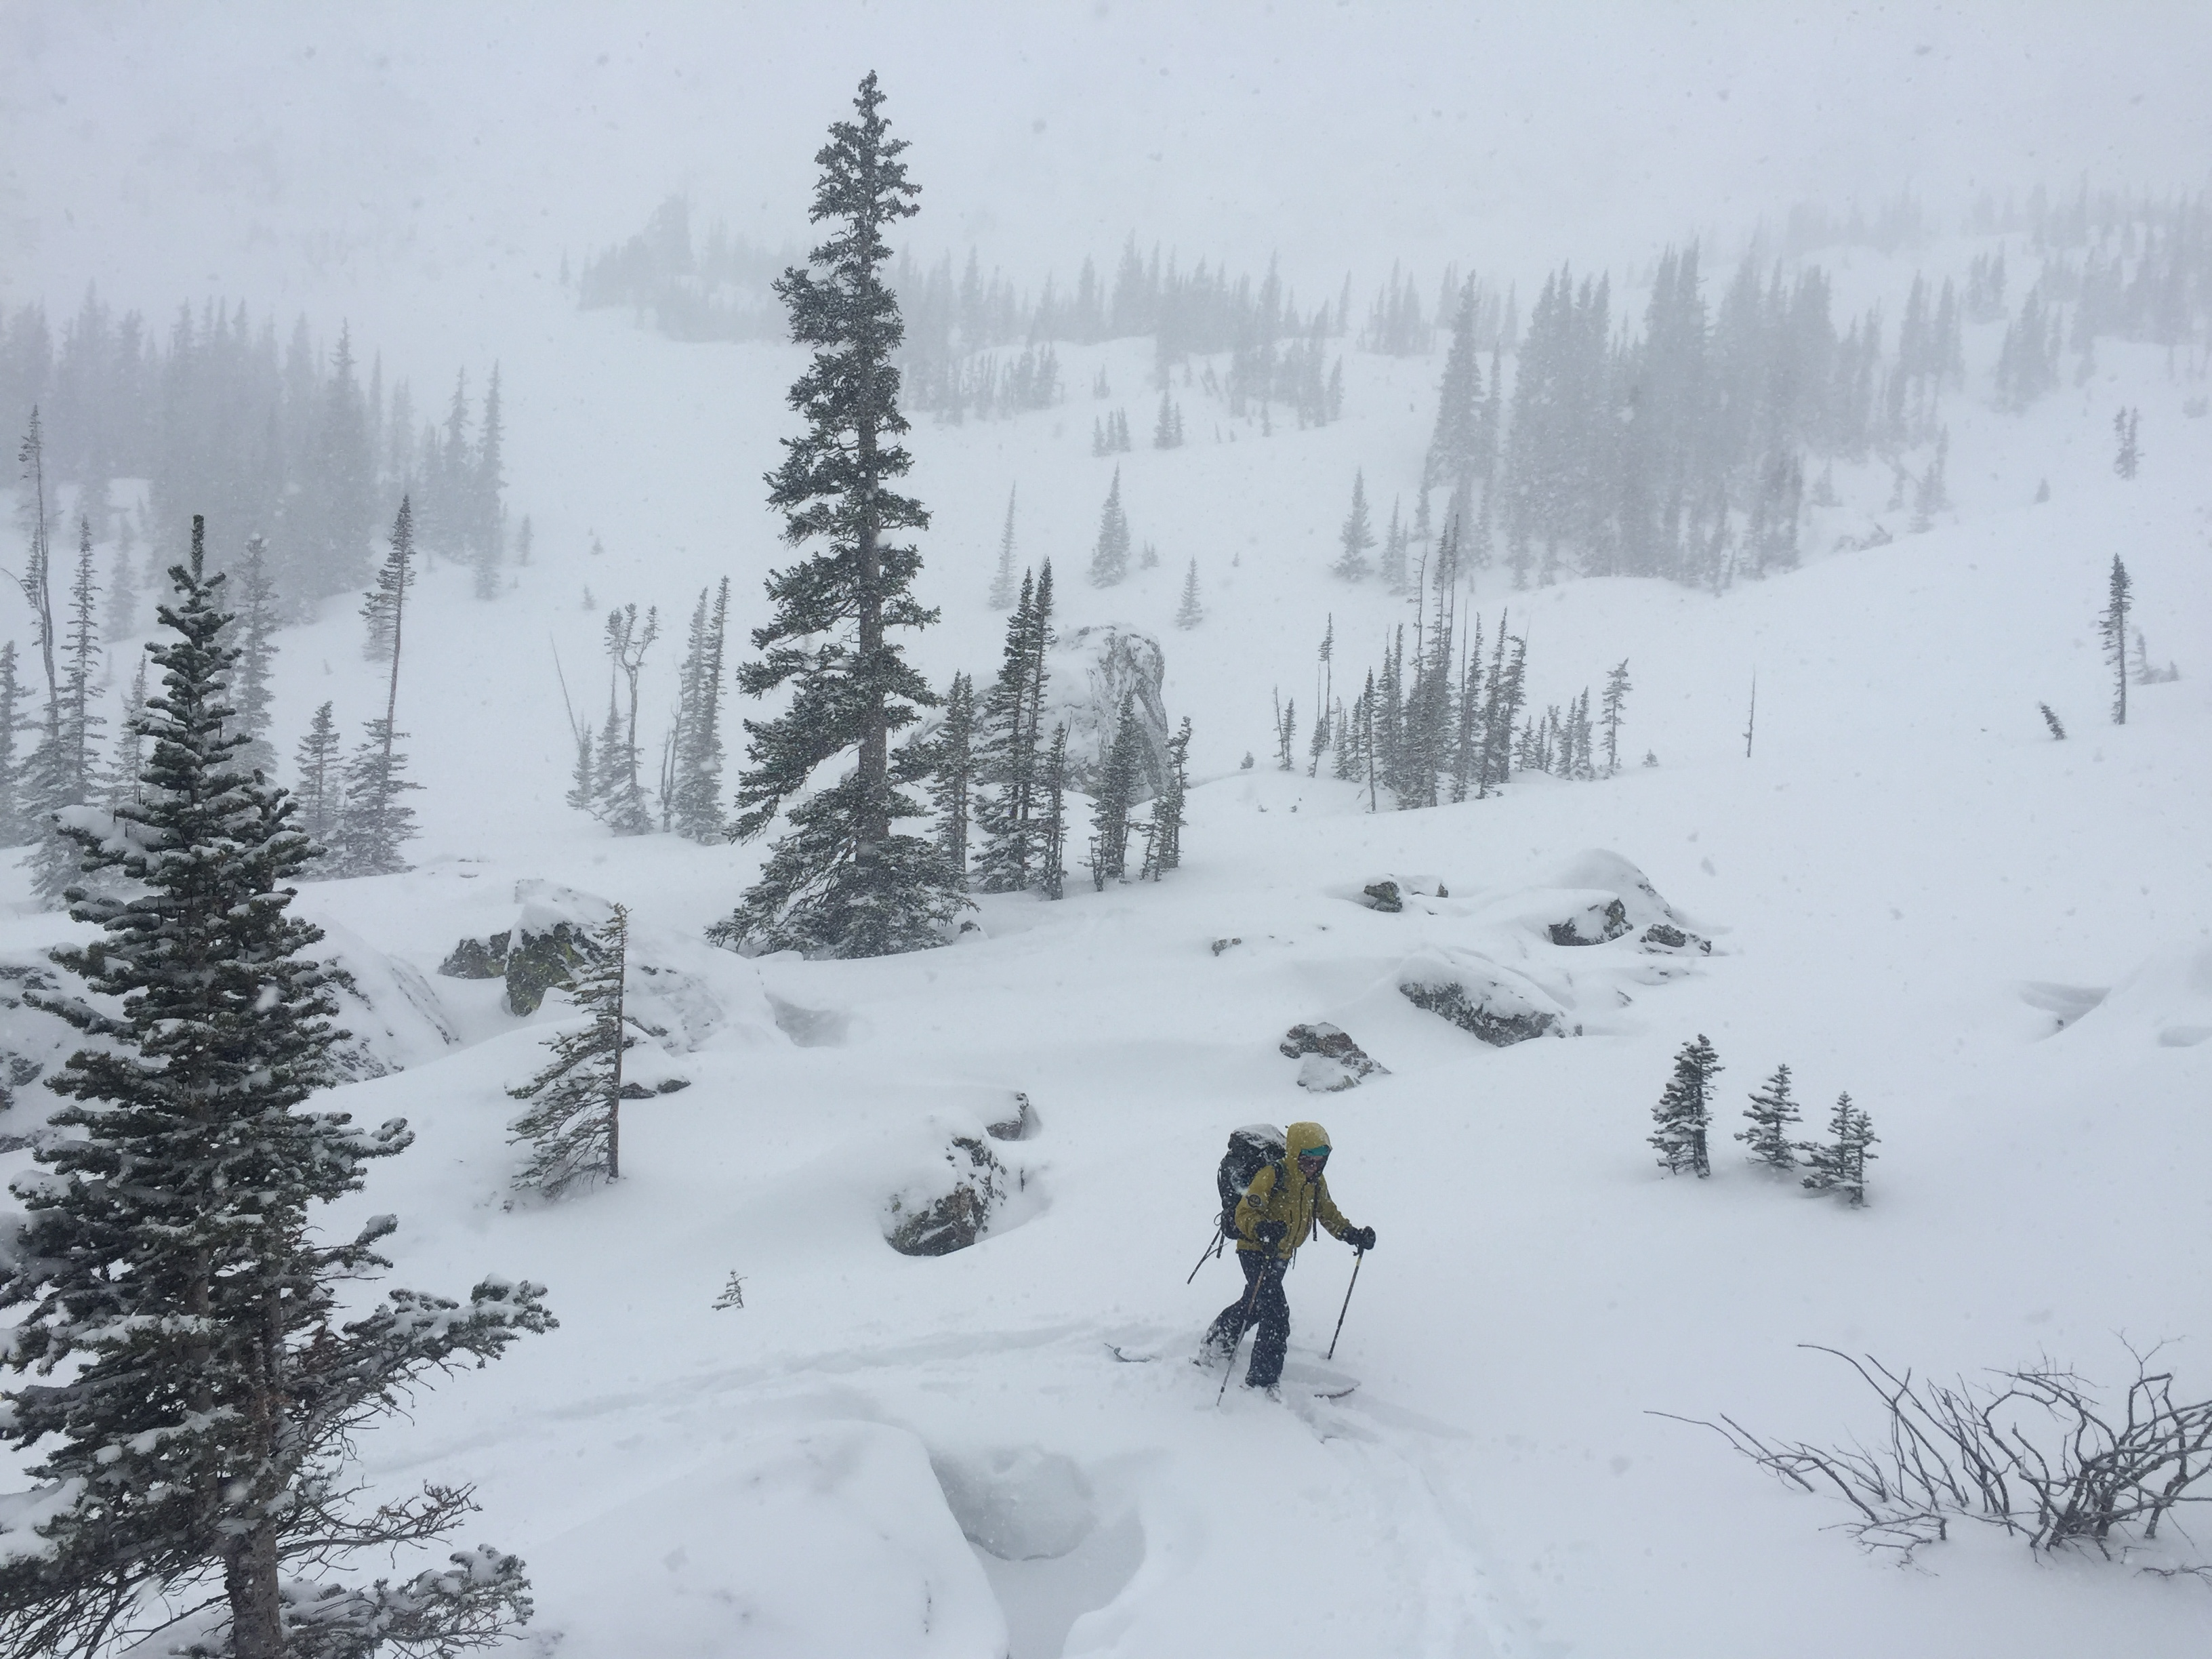 RMNP Search and Rescue Team Member conducts search operations in the Lake Haiyaha area.